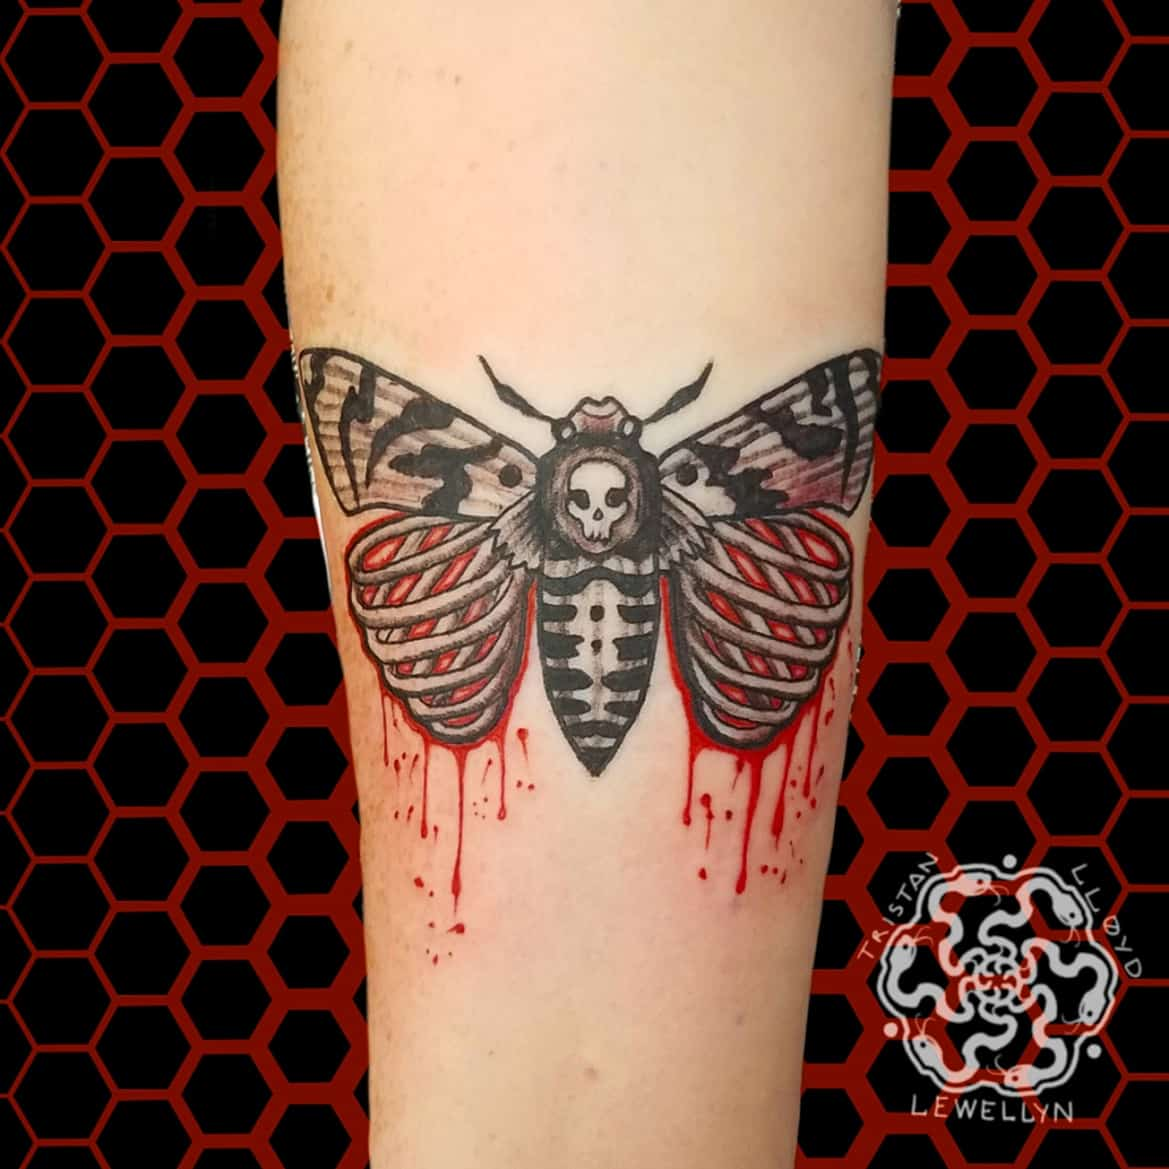 neotraditional tattoo of death head moth on a forearm